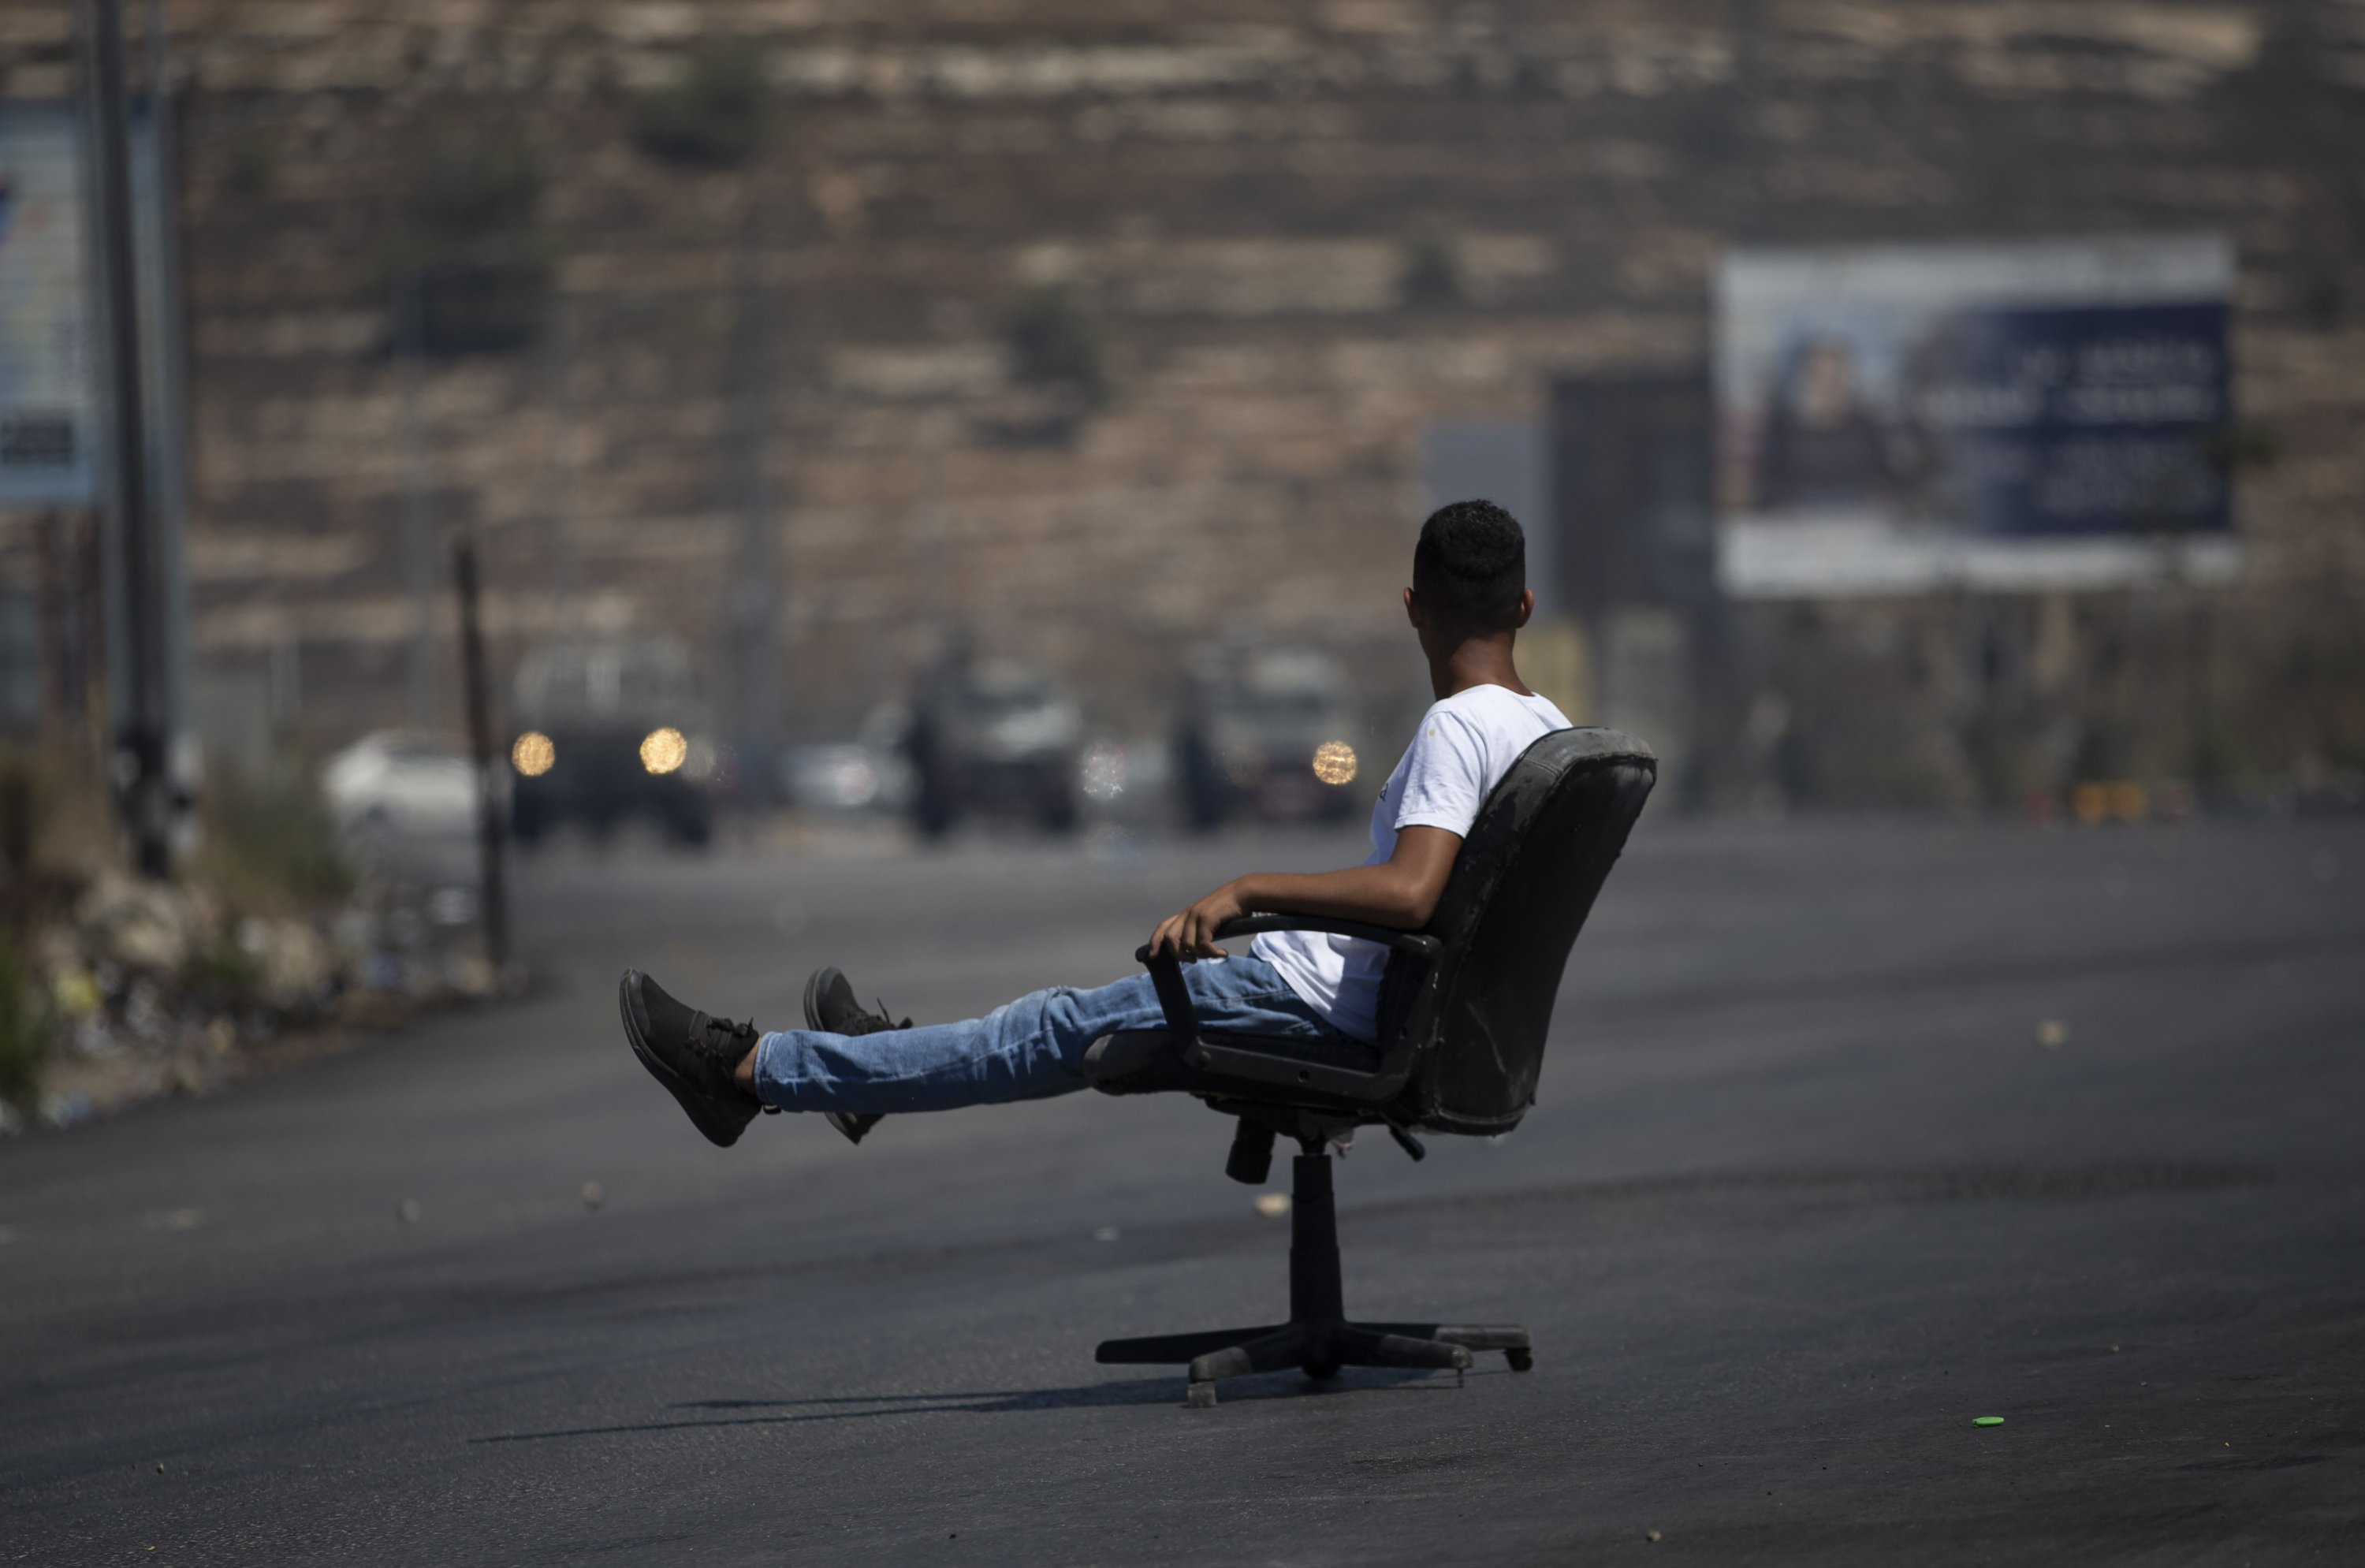 A Palestinian protester sits in a chair during clashes with Israeli forces over the killing of four Palestinians in the Jenin refugee camp by Israeli forces at the northern entrance of the West Bank city of Ramallah, Palestine, Aug. 17, 2021. (AP Photo)